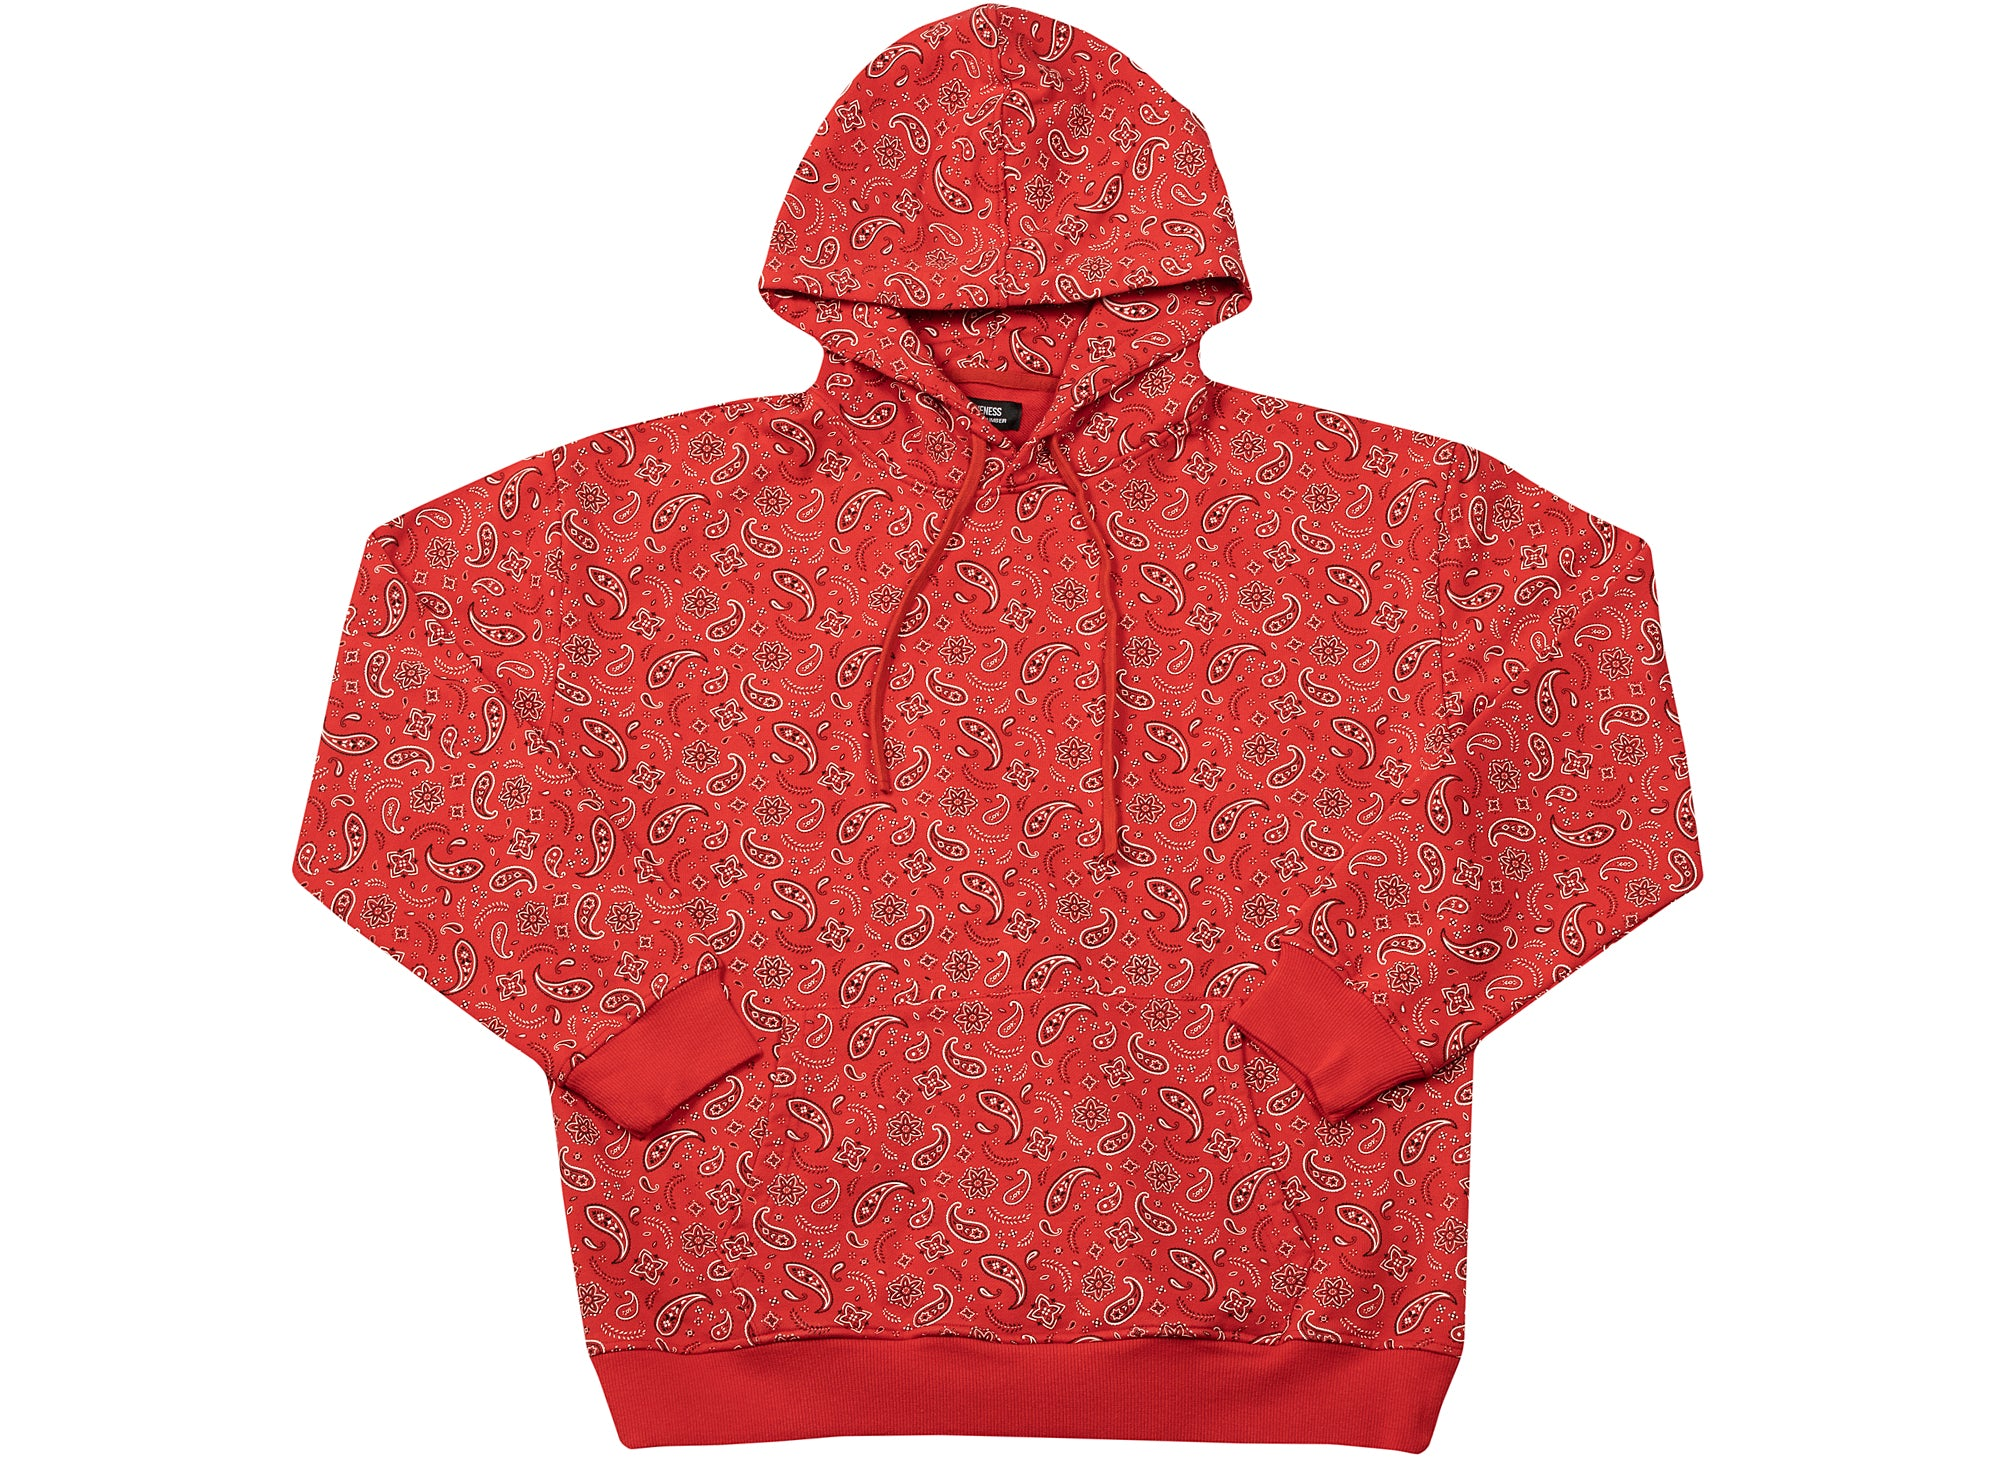 Oneness Sawyer Hoodie in Red xld